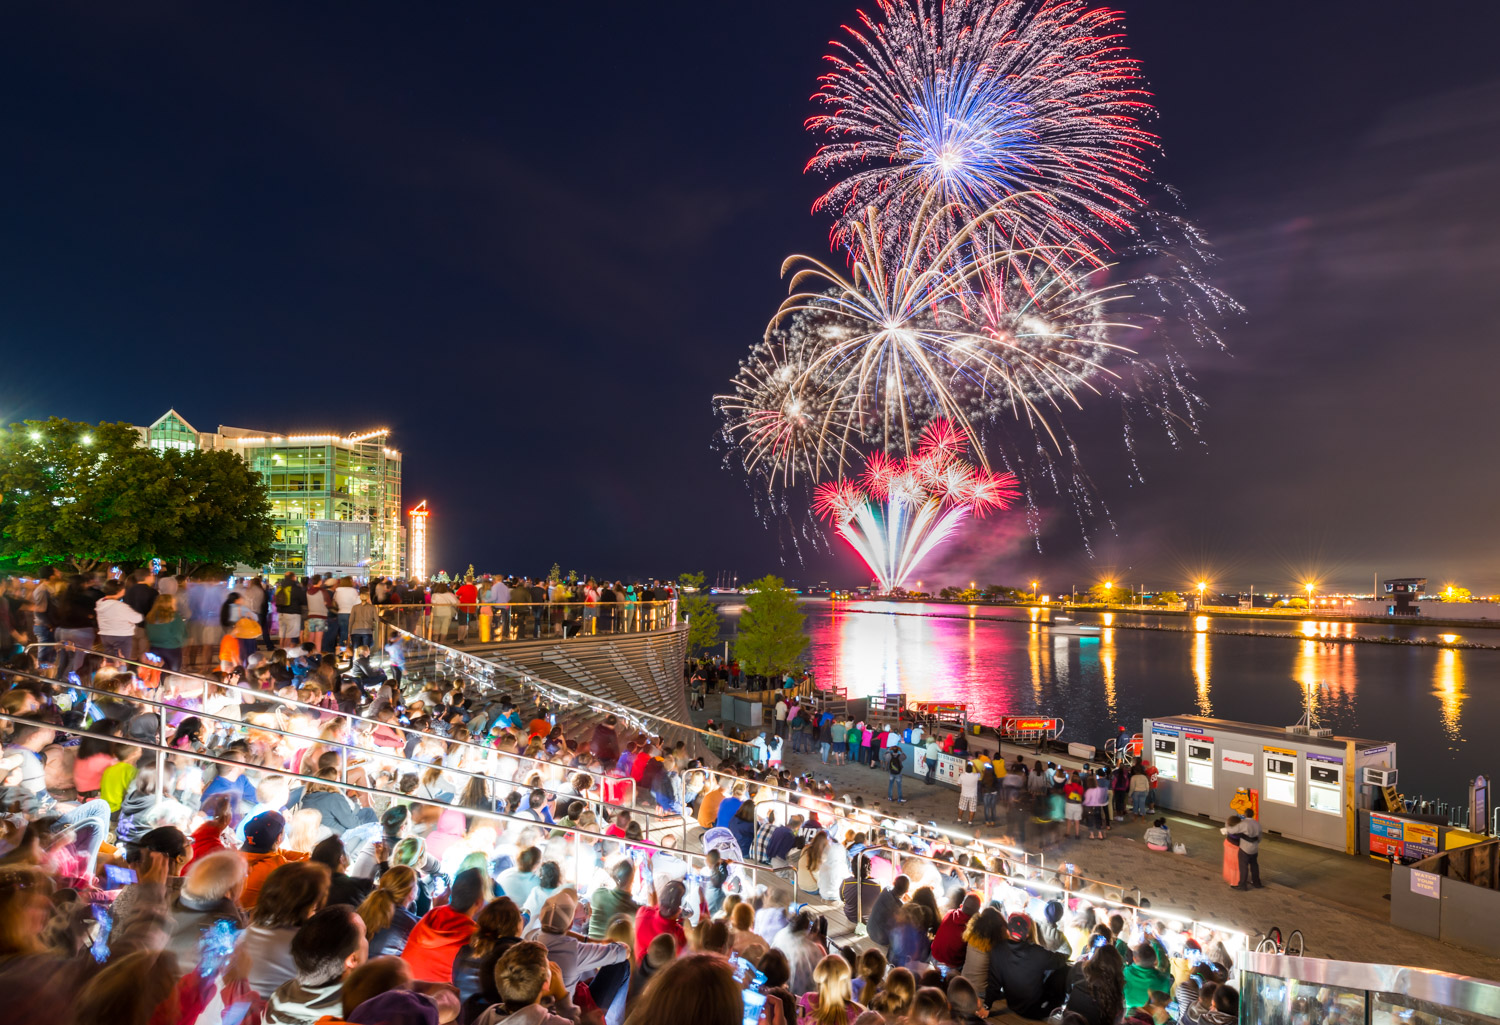 Navy Pier Celebrates Fourth of July with Signature Fireworks Display and Two Days of Free Live Music